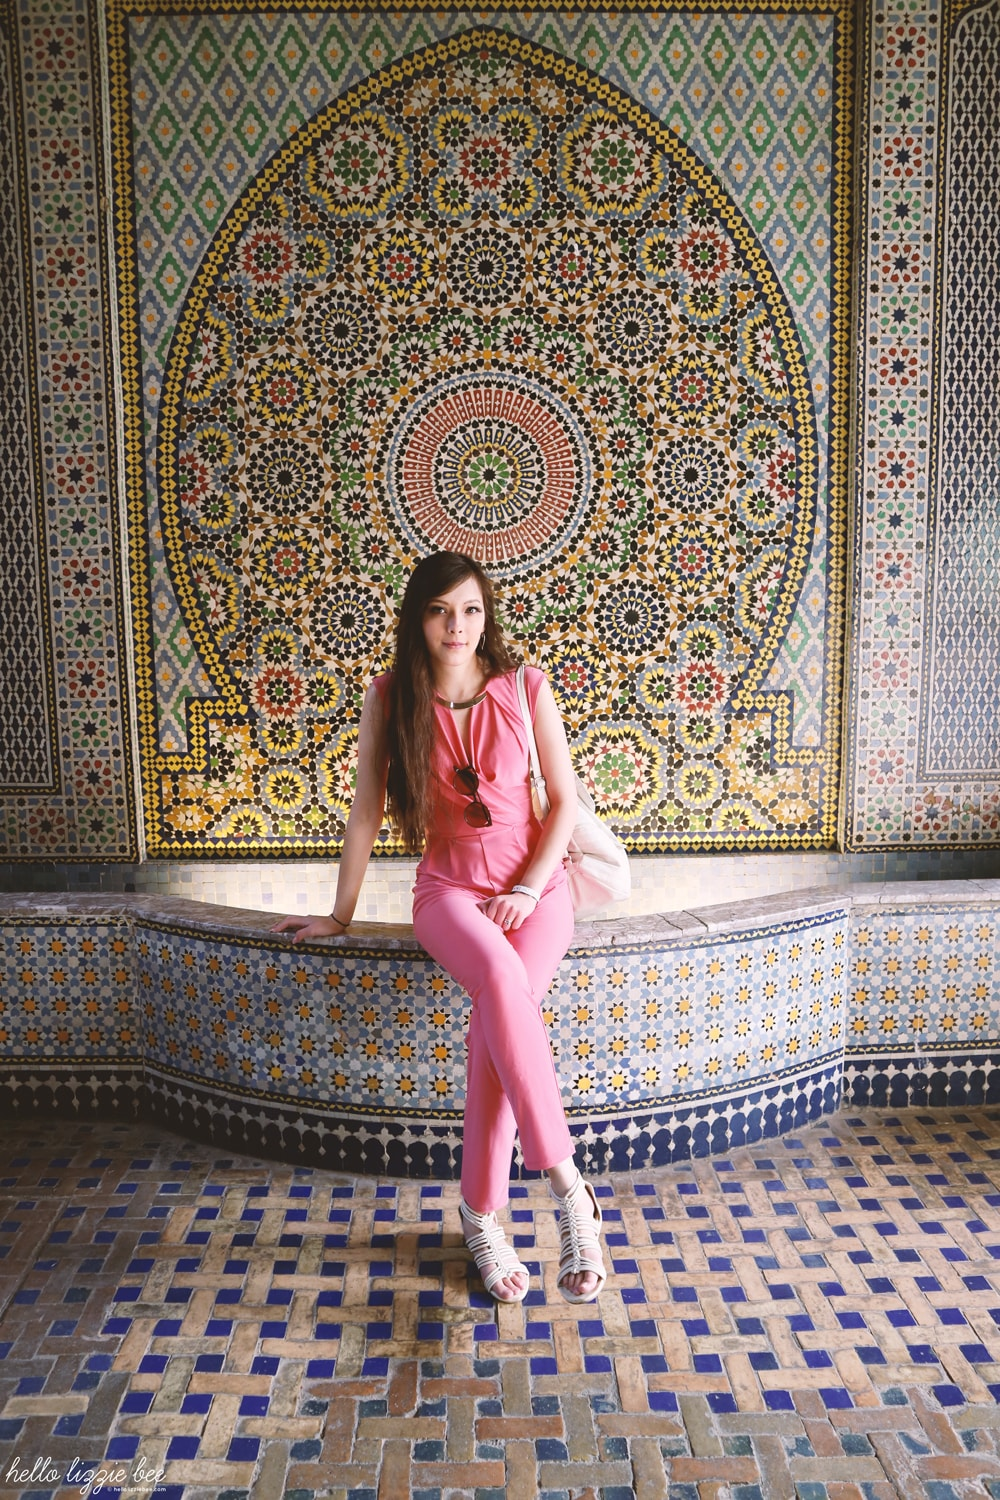 fashion blogger, travel blogger, moroccan architecture